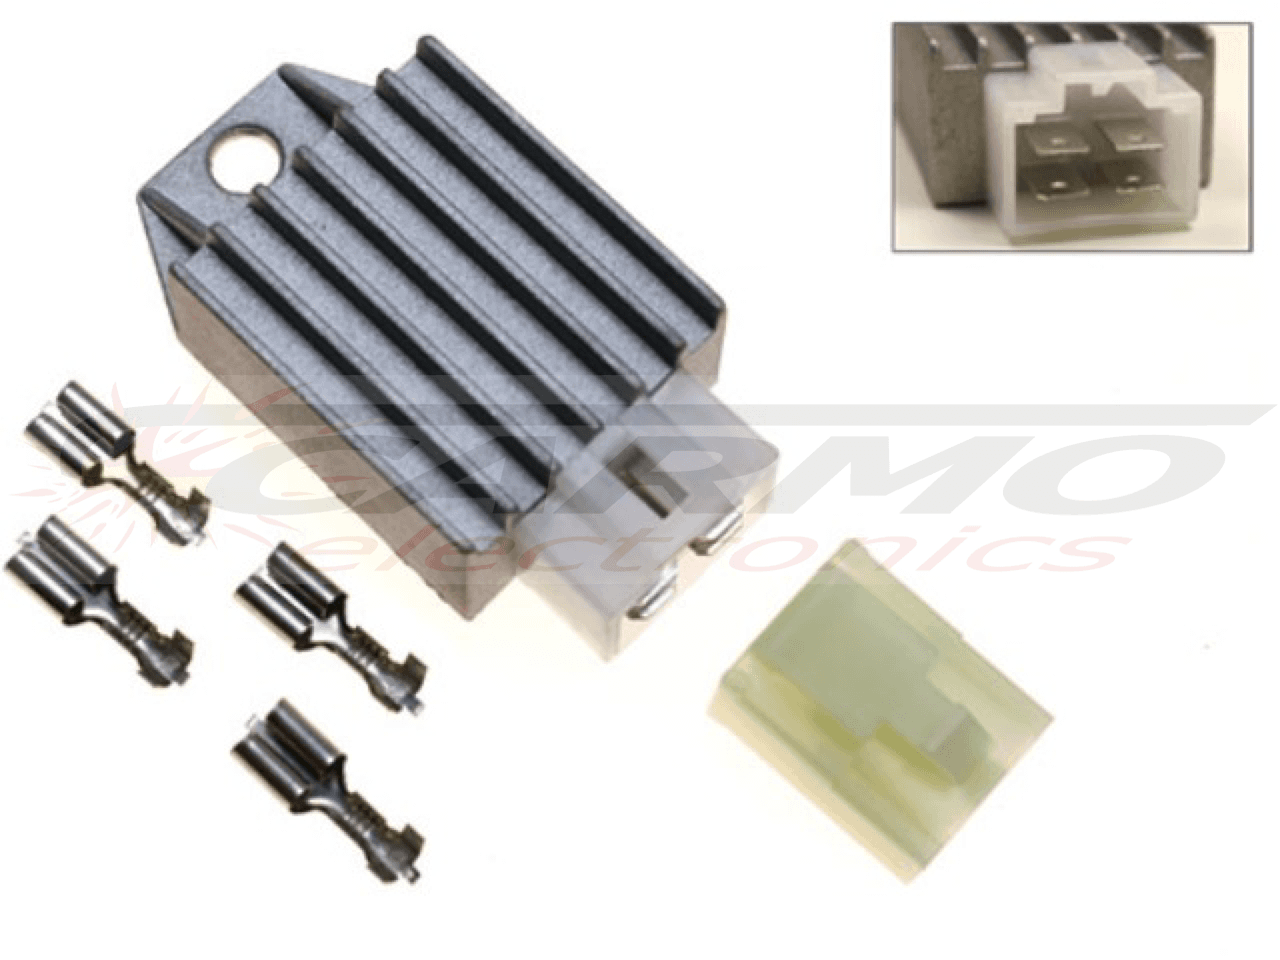 Voltage Regulator Rectifier Carmo Electronics The Place For Schematic Motorcycle Carr2151 Contra One And Two Fase